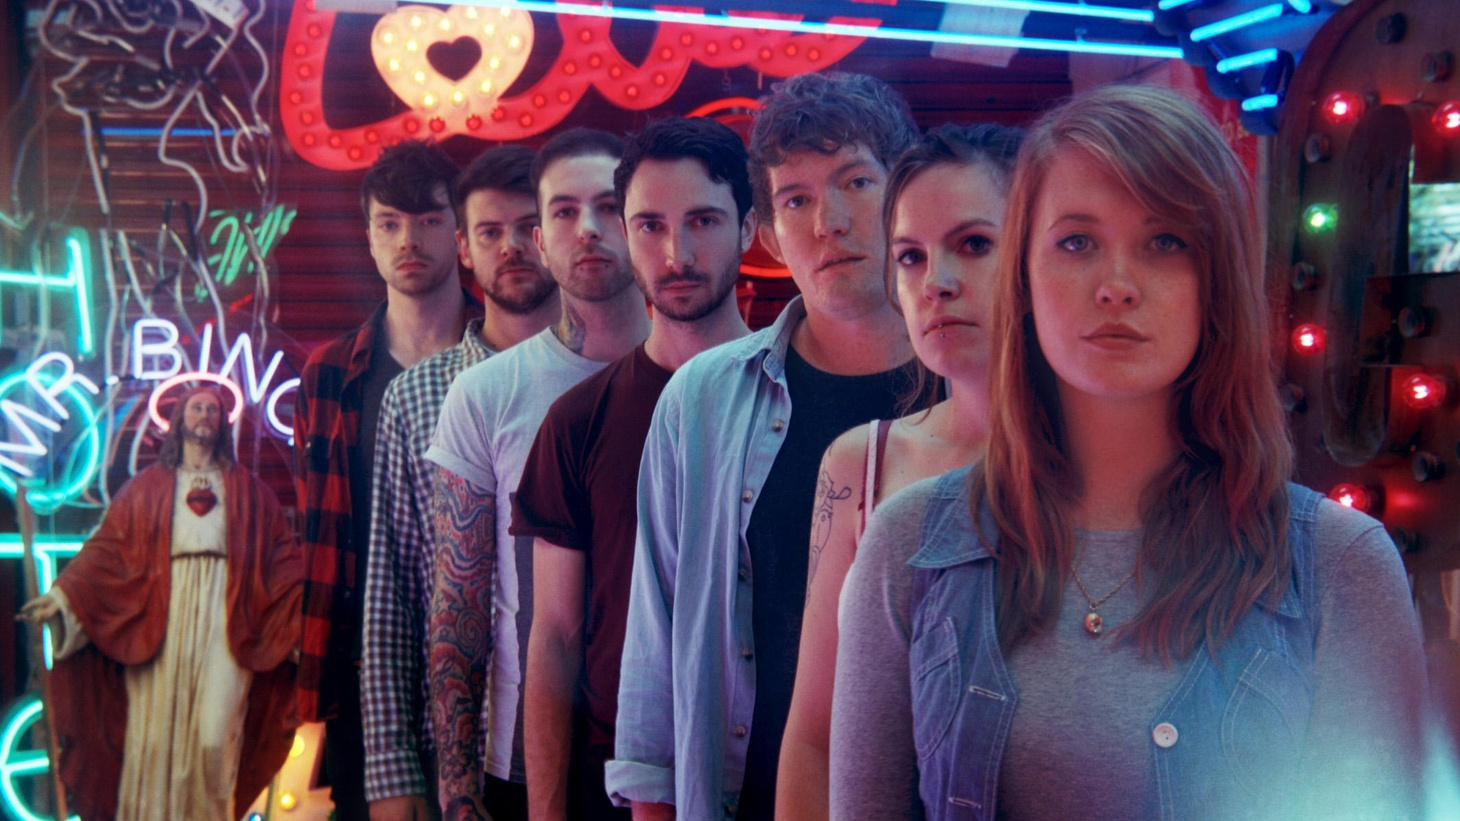 Wales collective Los Campesinos! specialize in catchy indie pop, even when making a record about a breakup. They document the trials of romance with exuberant energy.